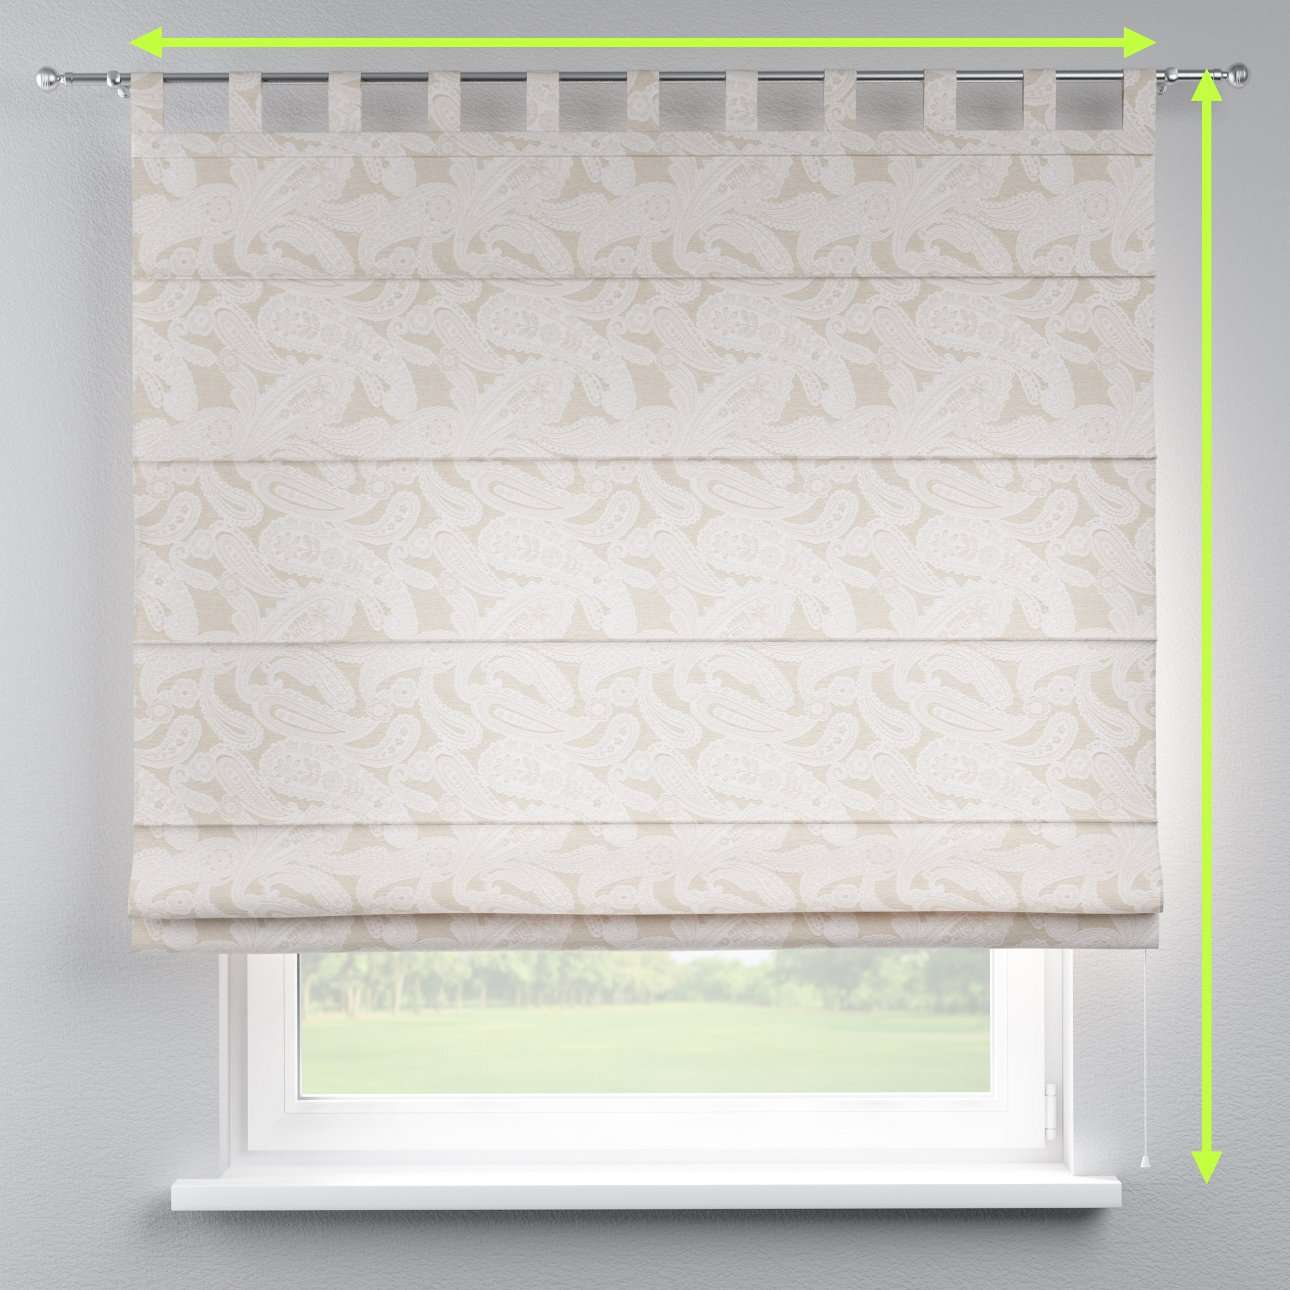 Verona tab top roman blind in collection Rustica, fabric: 138-10